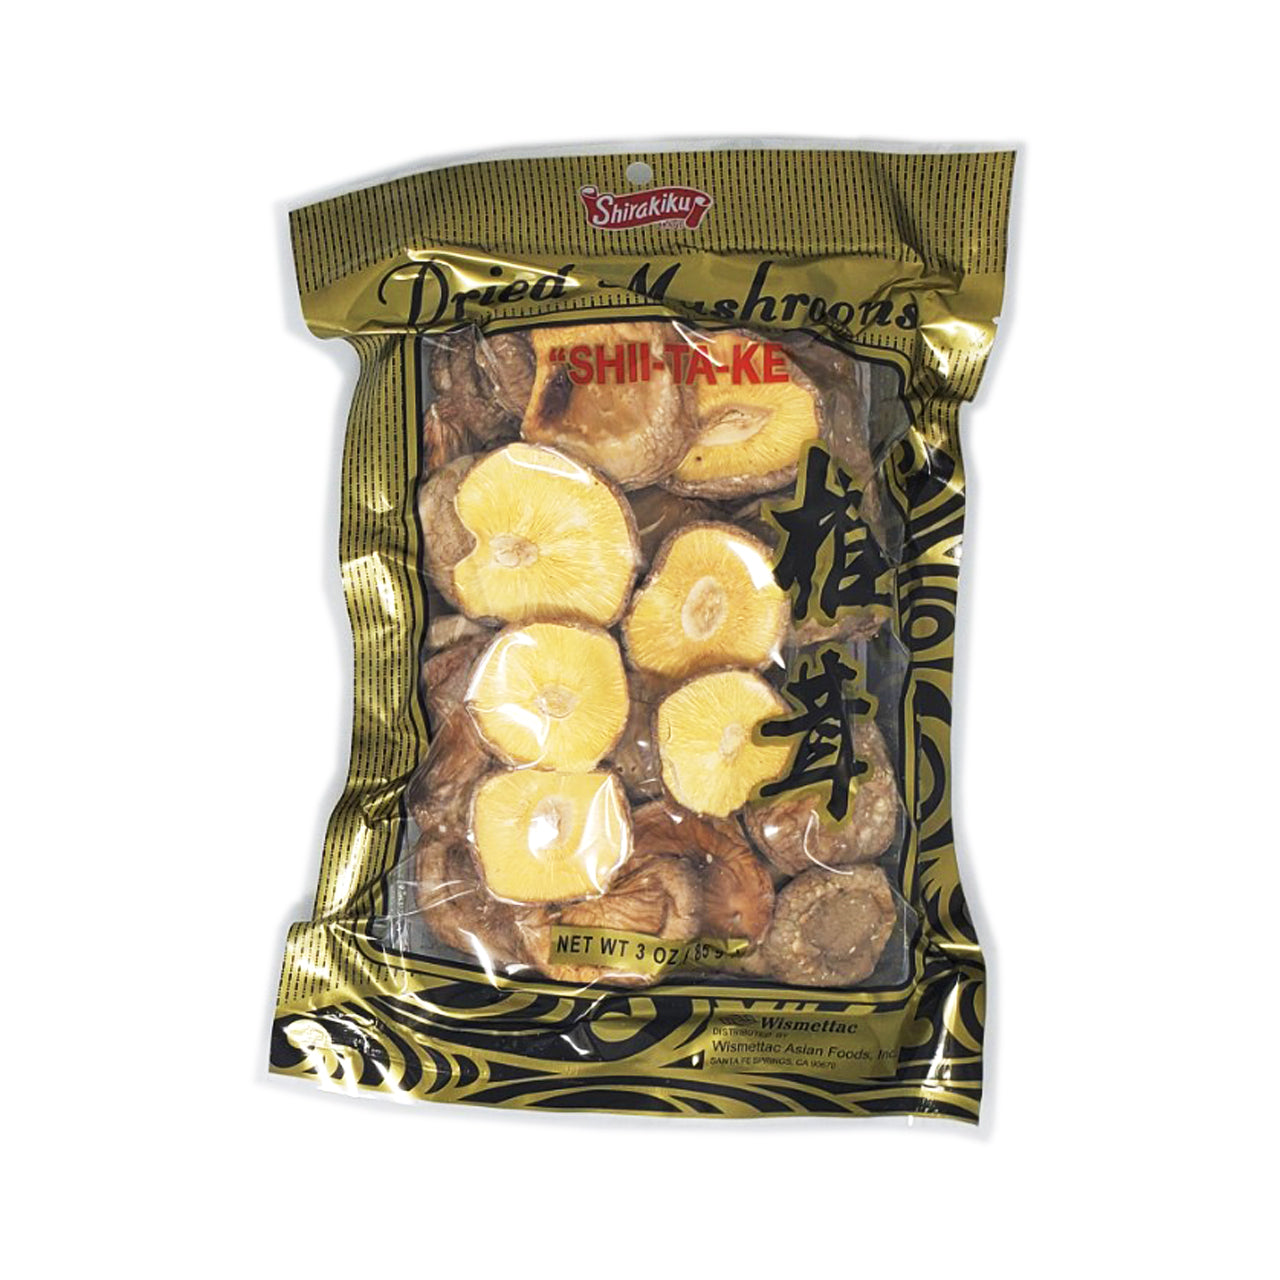 마른 버섯 (Dried Shiitake Mushrooms) 85g